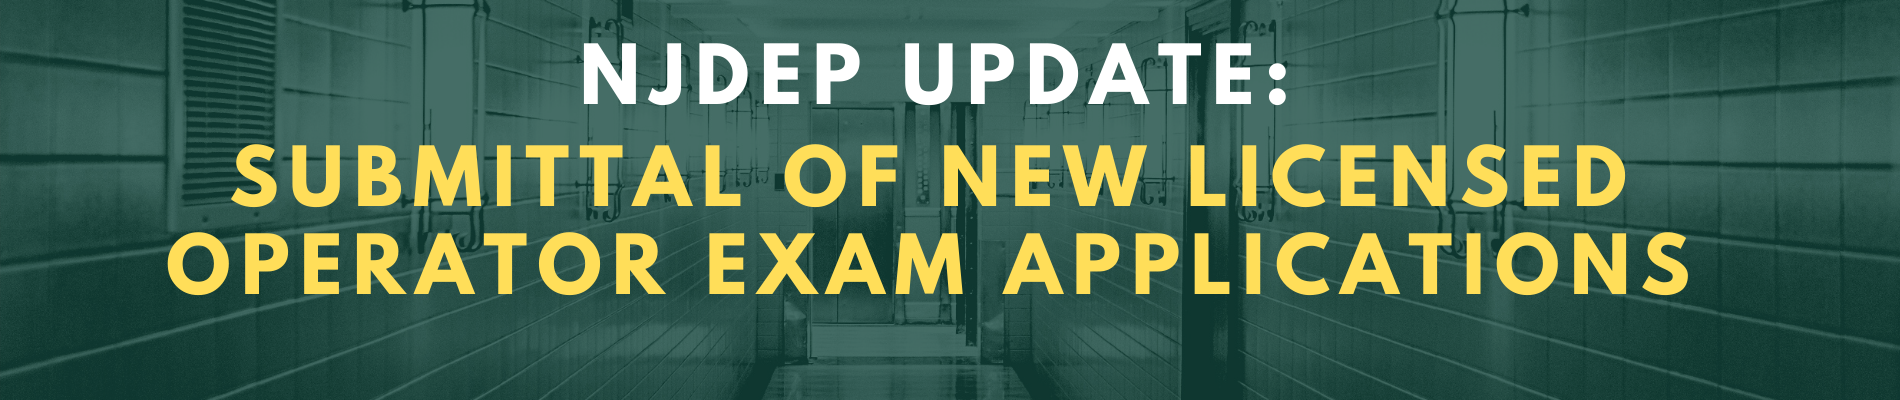 NJDEP New Op Exam